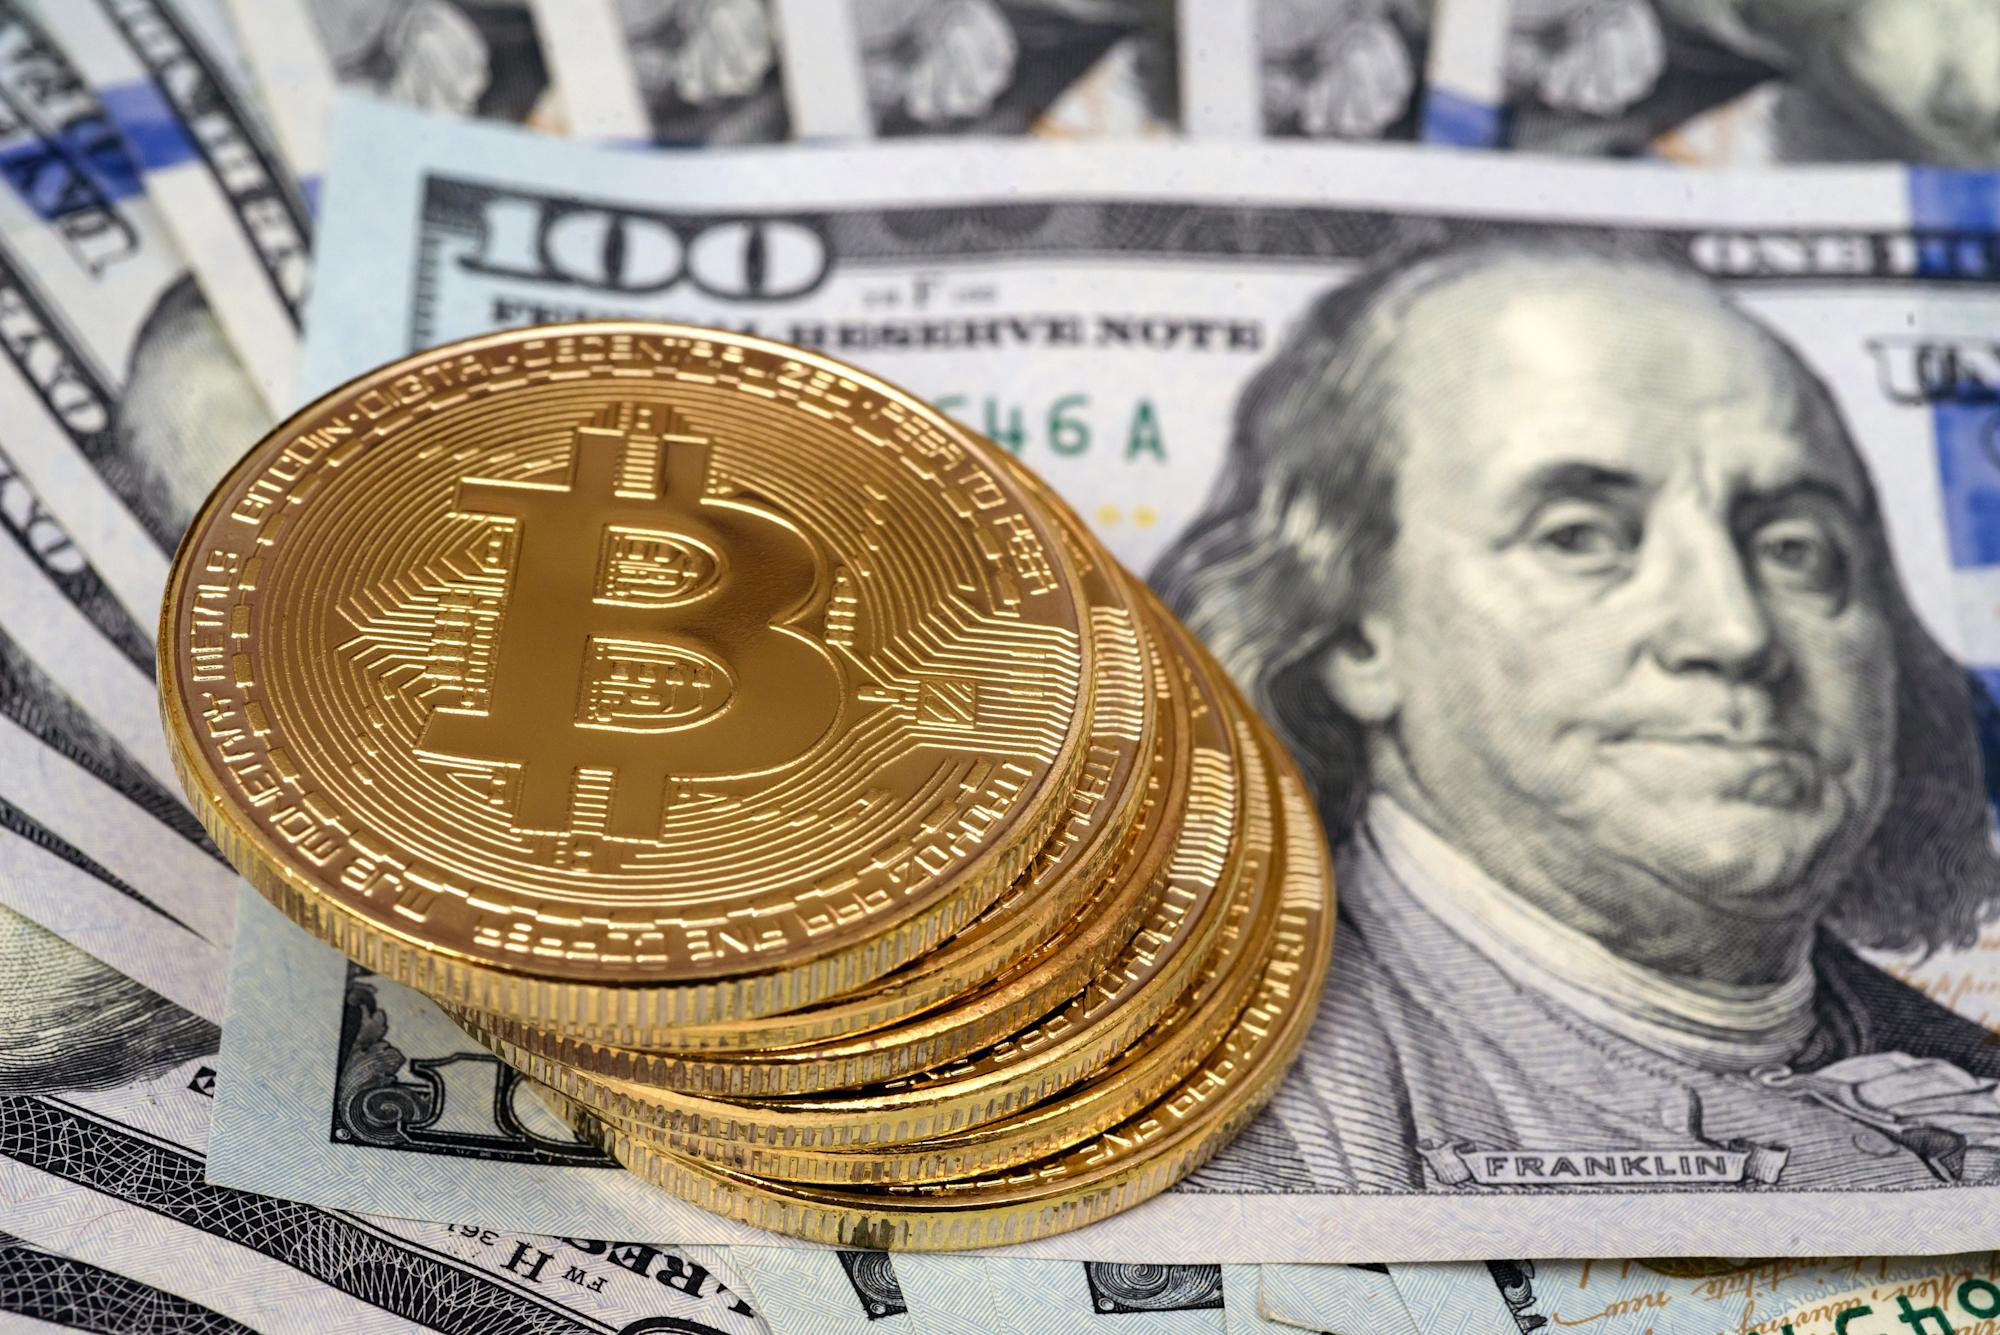 Bitcoins to dollars history of christianity poker strategy 3 betting and 4